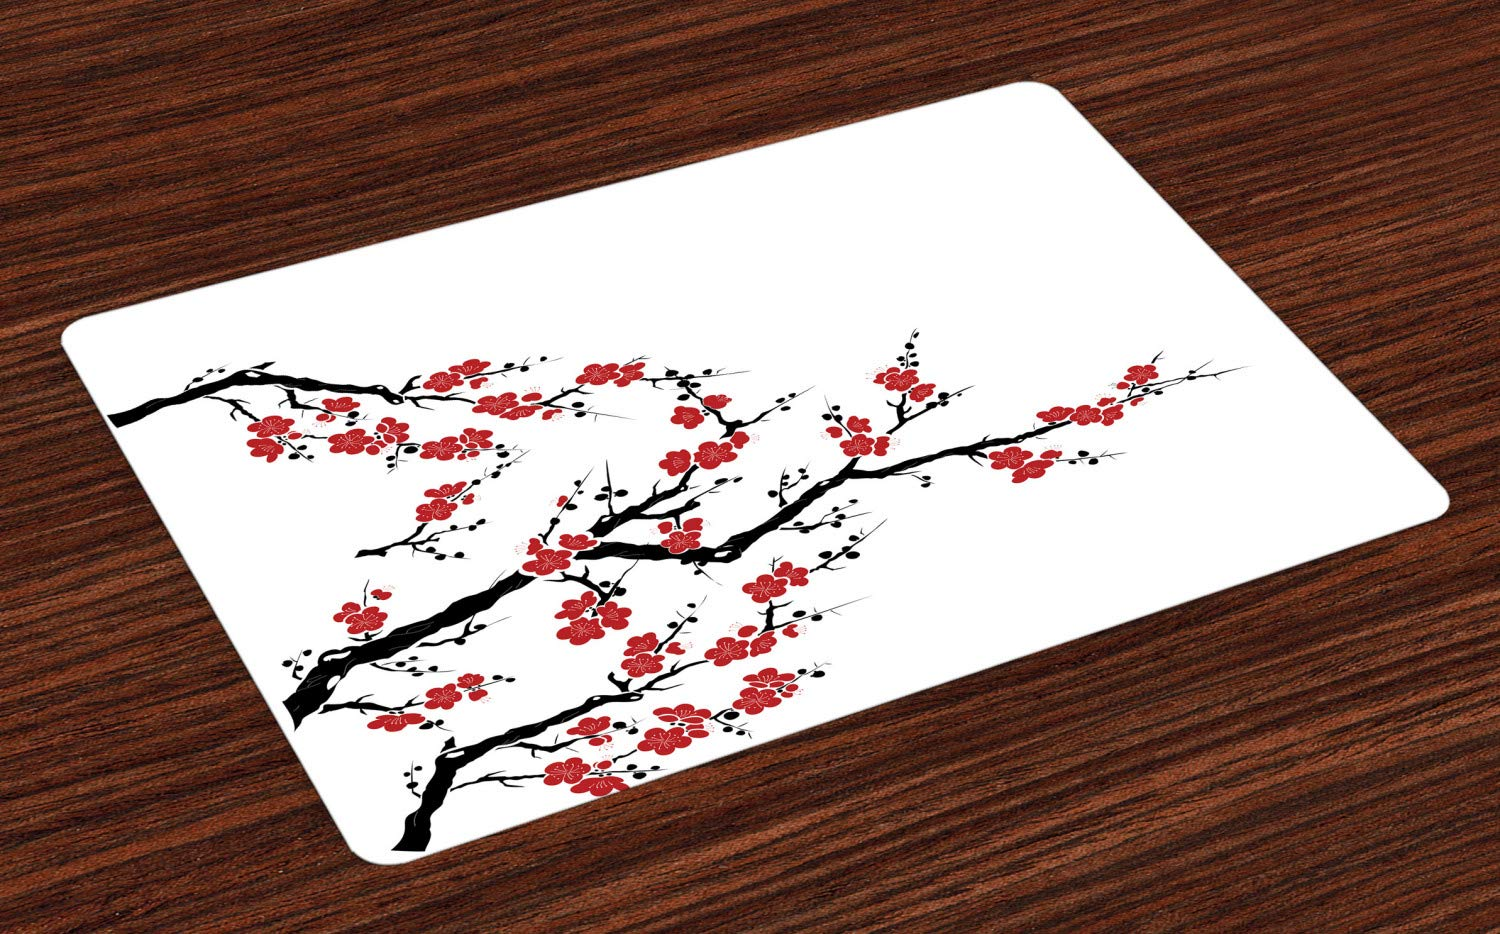 Simplistic Cherry Blossom Tree Asian Botanic Themed Pattern Fresh Organic Lines Washable Fabric Placemats for Dining Room Kitchen Table Decor Lunarable Japanese Place Mats Set of 4 Cinnamon Red